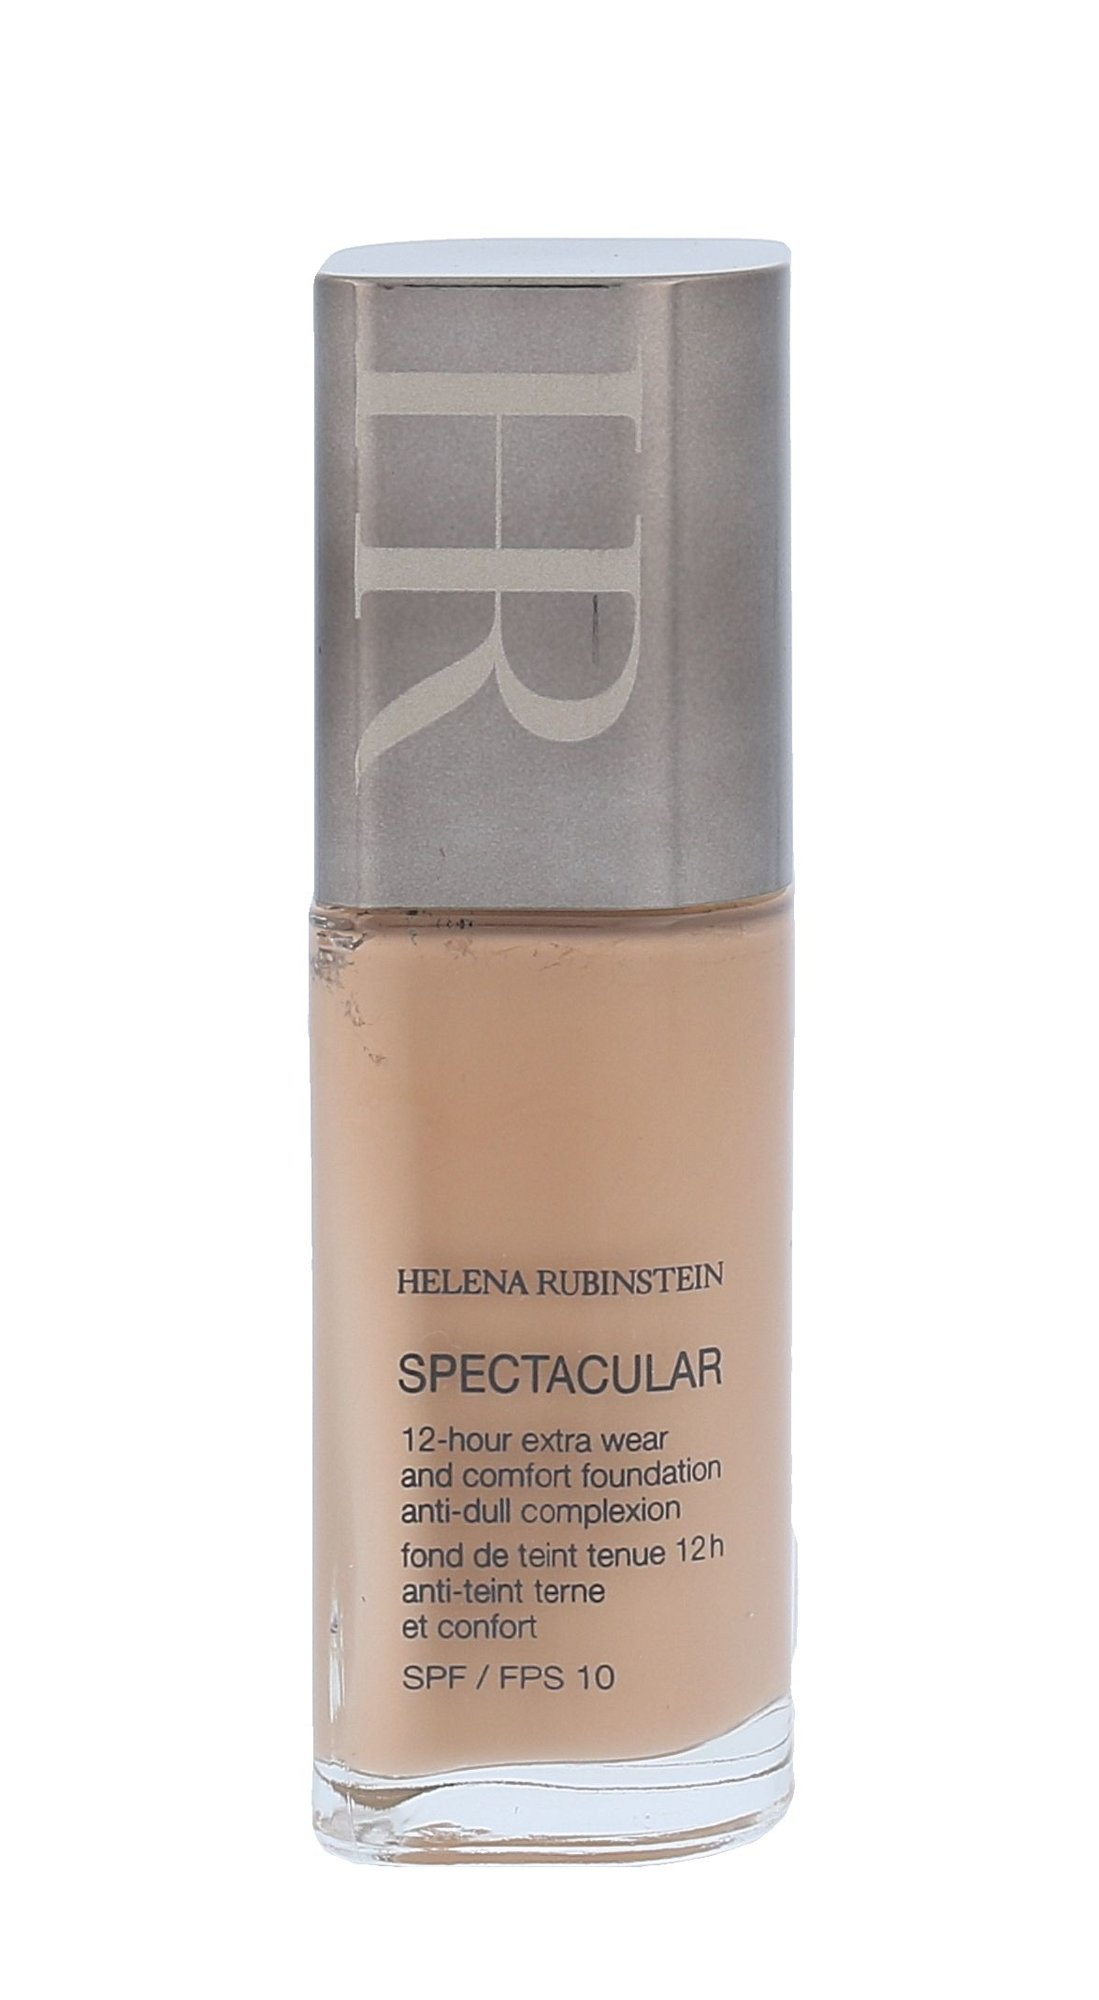 Helena Rubinstein Spectacular Makeup 30ml 24 Caramel